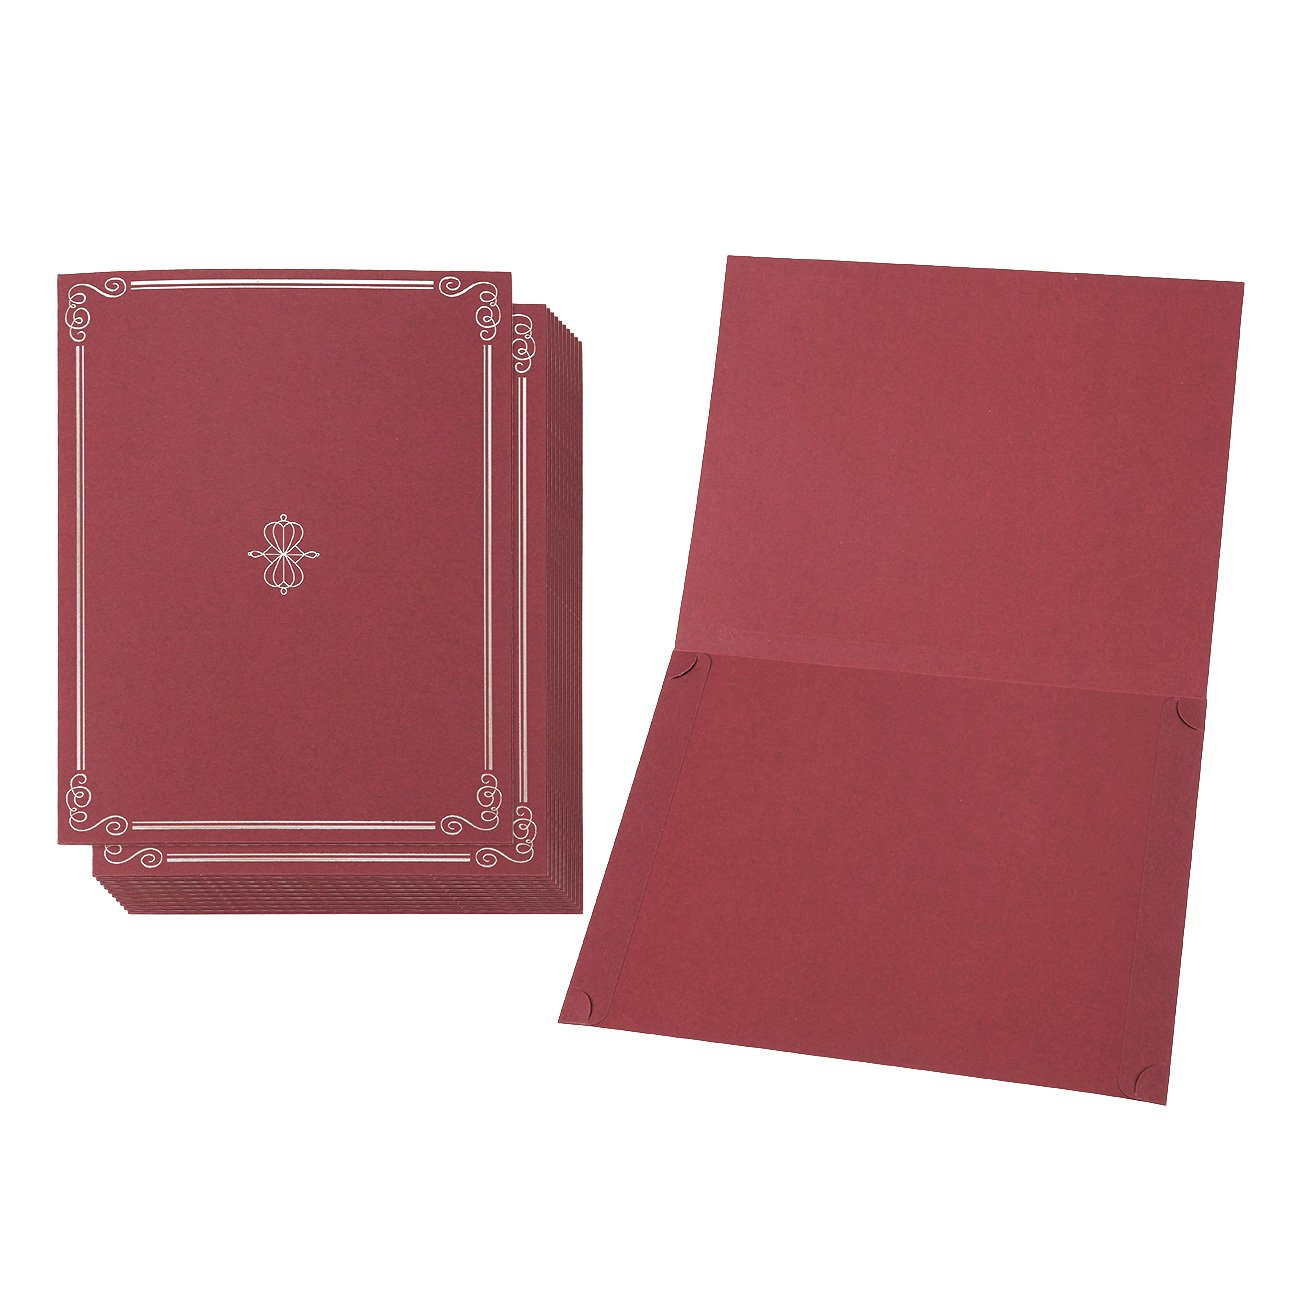 12-Pack Certificate Holder - Diploma Cover, Document Cover for Letter-Sized Award Certificates, Red, Silver Foil, 11.2 x 8.8 Inches